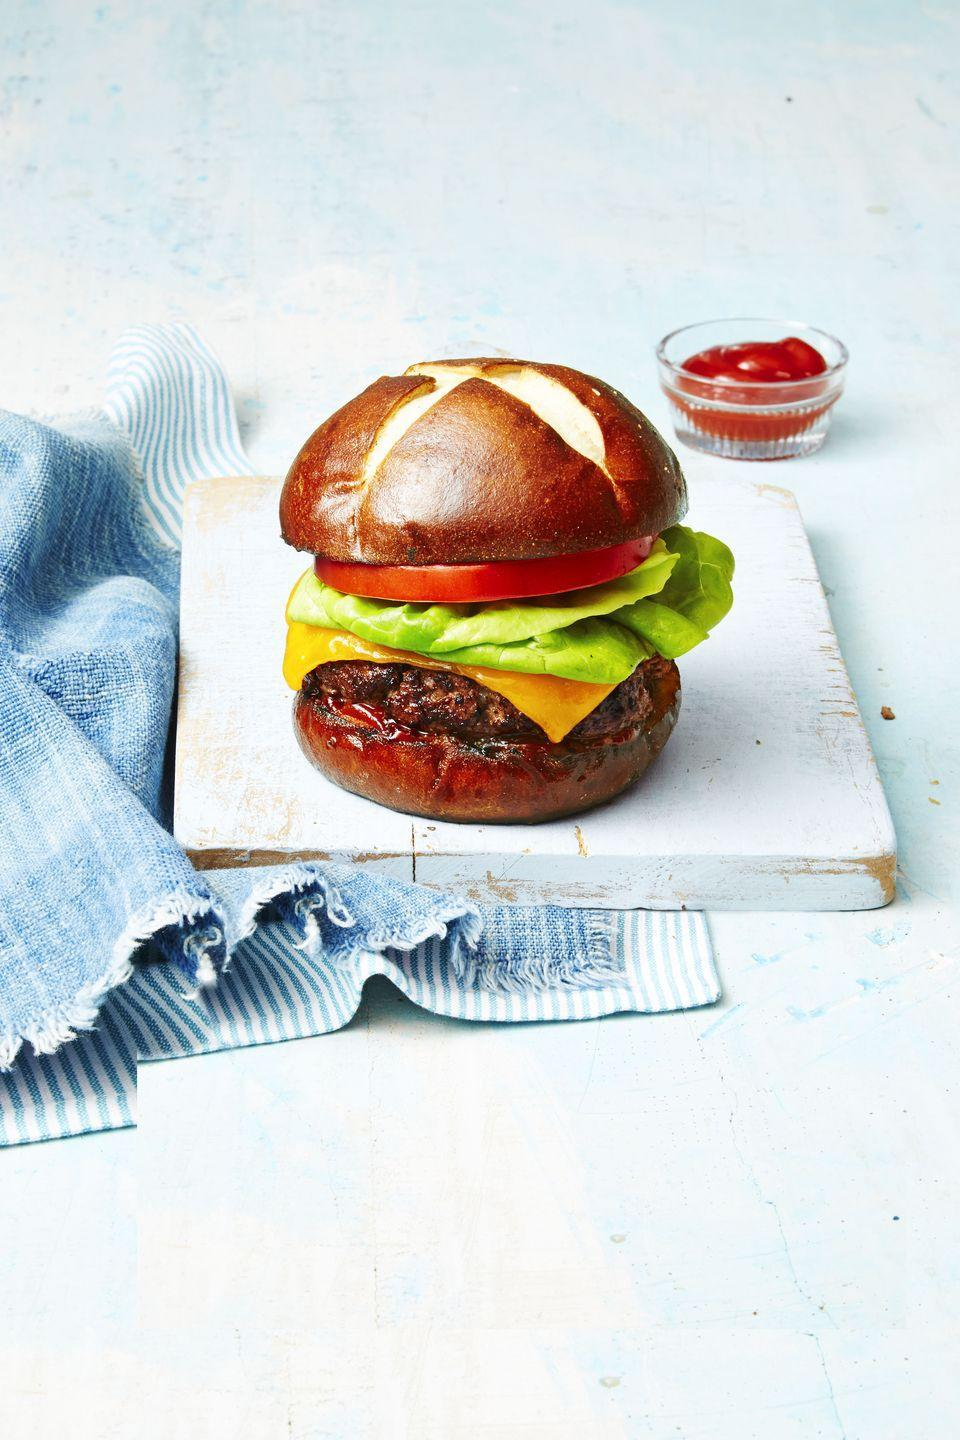 """<p>Give your burgers a kick with the addition of horseradish, spicy mustard and Worcestershire. Then, pair it with a sweet pretzel bun to balance the whole thing out.</p><p><em><a href=""""https://www.goodhousekeeping.com/food-recipes/a38754/deviled-burger-recipe/"""" rel=""""nofollow noopener"""" target=""""_blank"""" data-ylk=""""slk:Get the recipe for Deviled Burger »"""" class=""""link rapid-noclick-resp"""">Get the recipe for Deviled Burger »</a></em> </p>"""